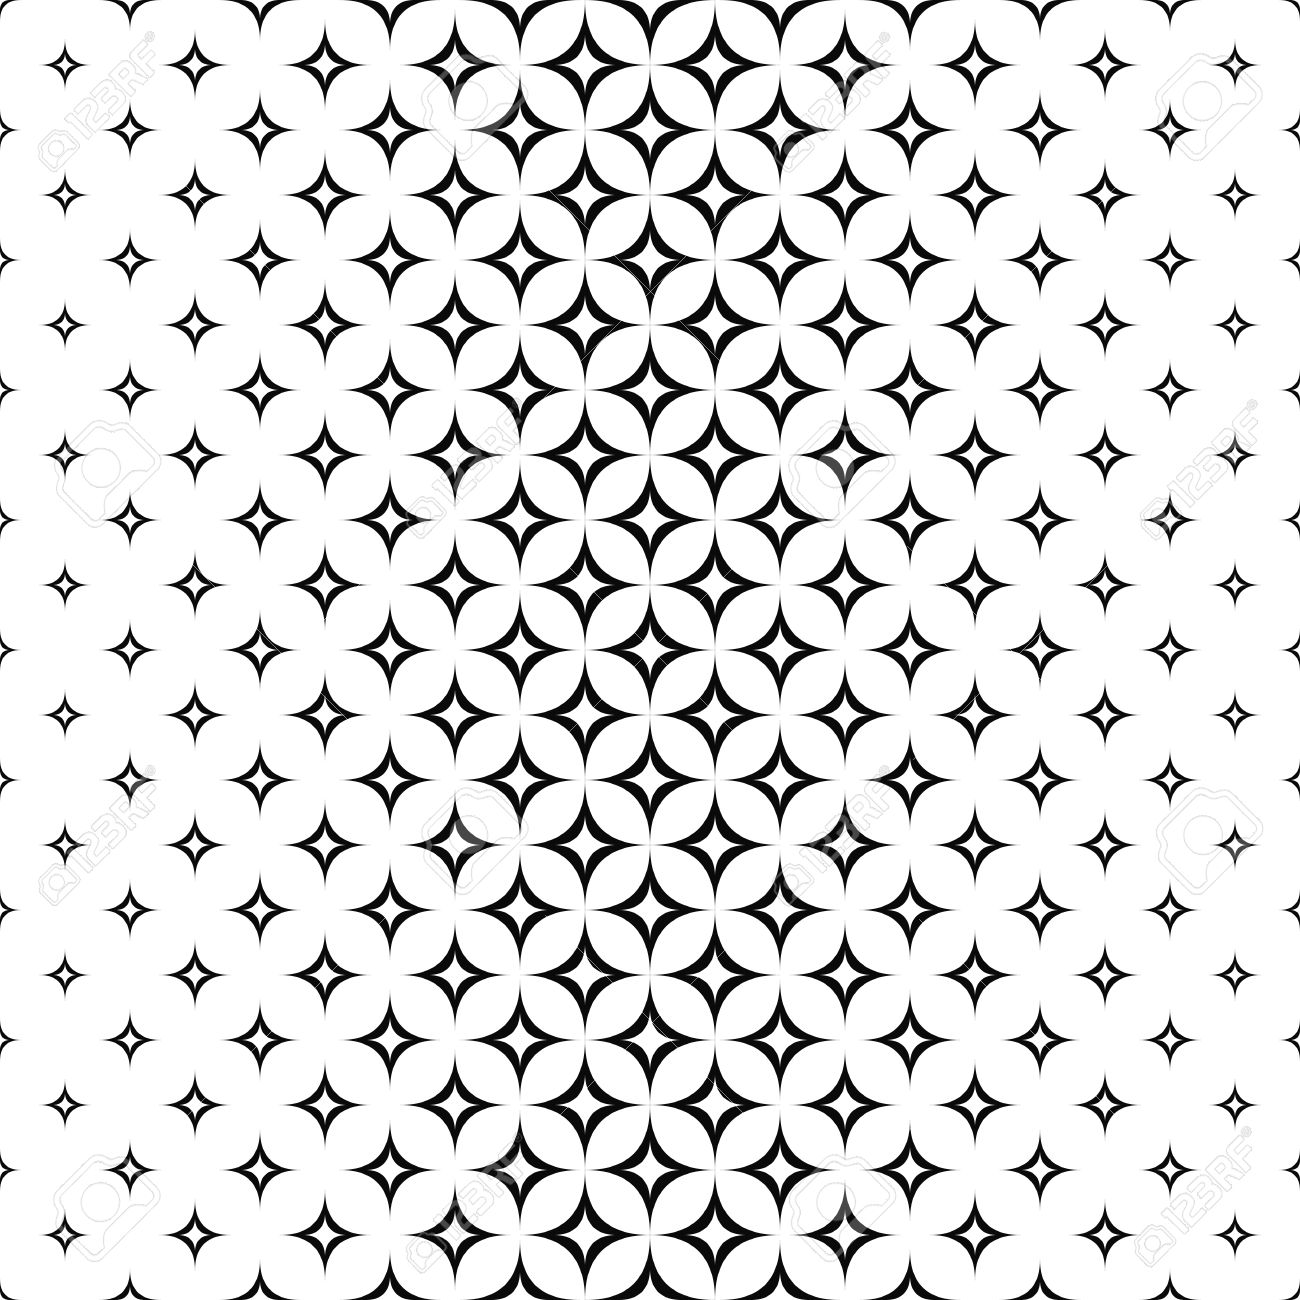 Monochrome Seamless Star Pattern Design Vector Background Stock Vector    48576811